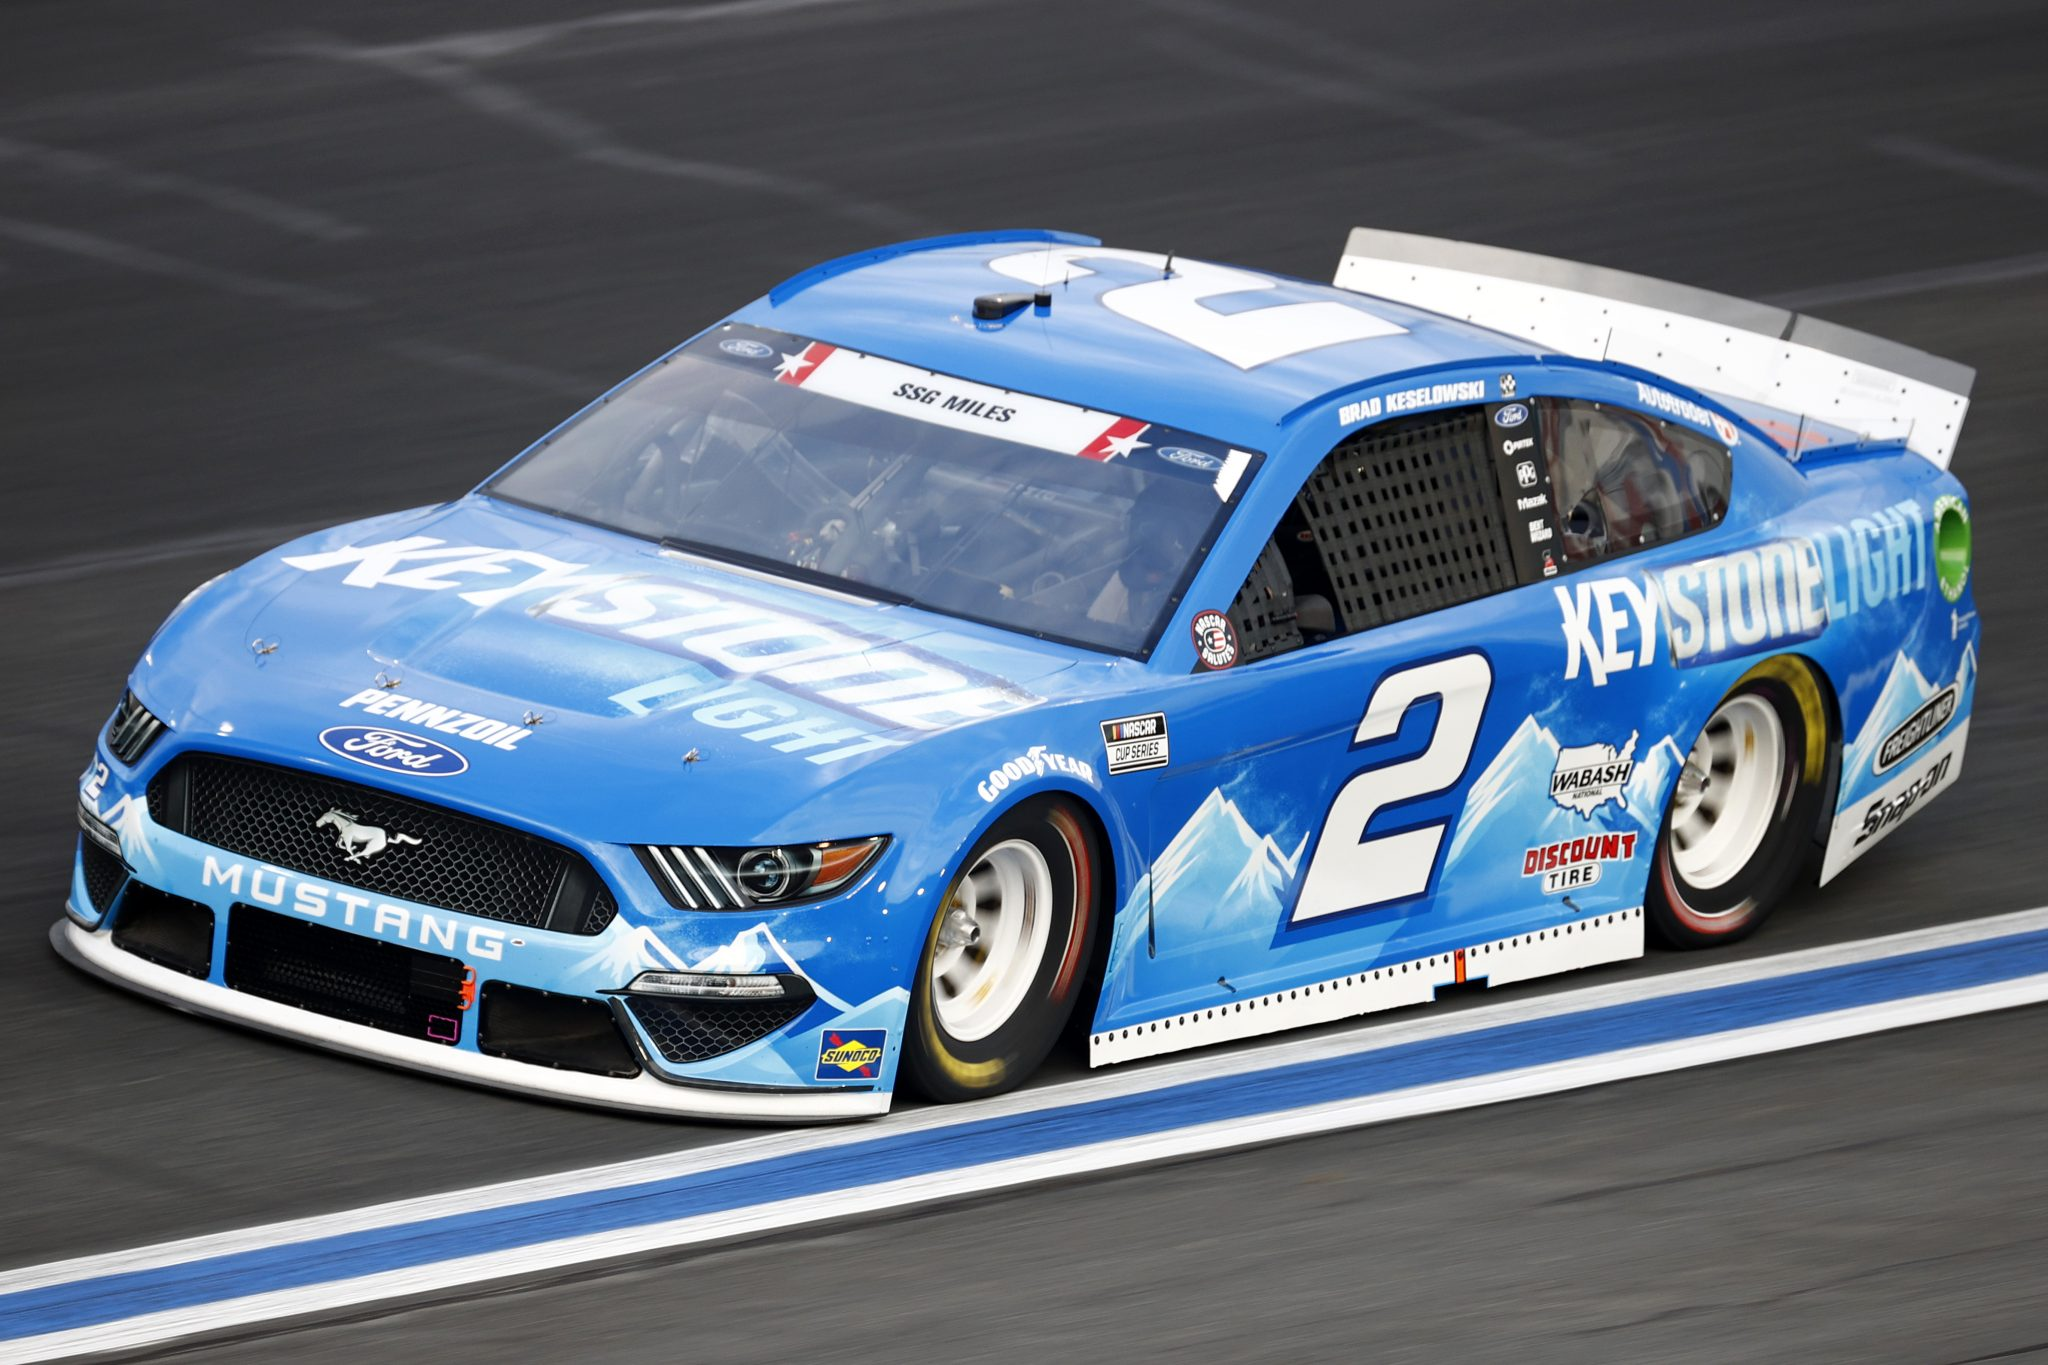 CONCORD, NORTH CAROLINA - MAY 28: Brad Keselowski, driver of the #2 Keystone Light Ford, drives during practice for the NASCAR Cup Series Coca-Cola 600 at Charlotte Motor Speedway on May 28, 2021 in Concord, North Carolina. (Photo by Jared C. Tilton/Getty Images) | Getty Images